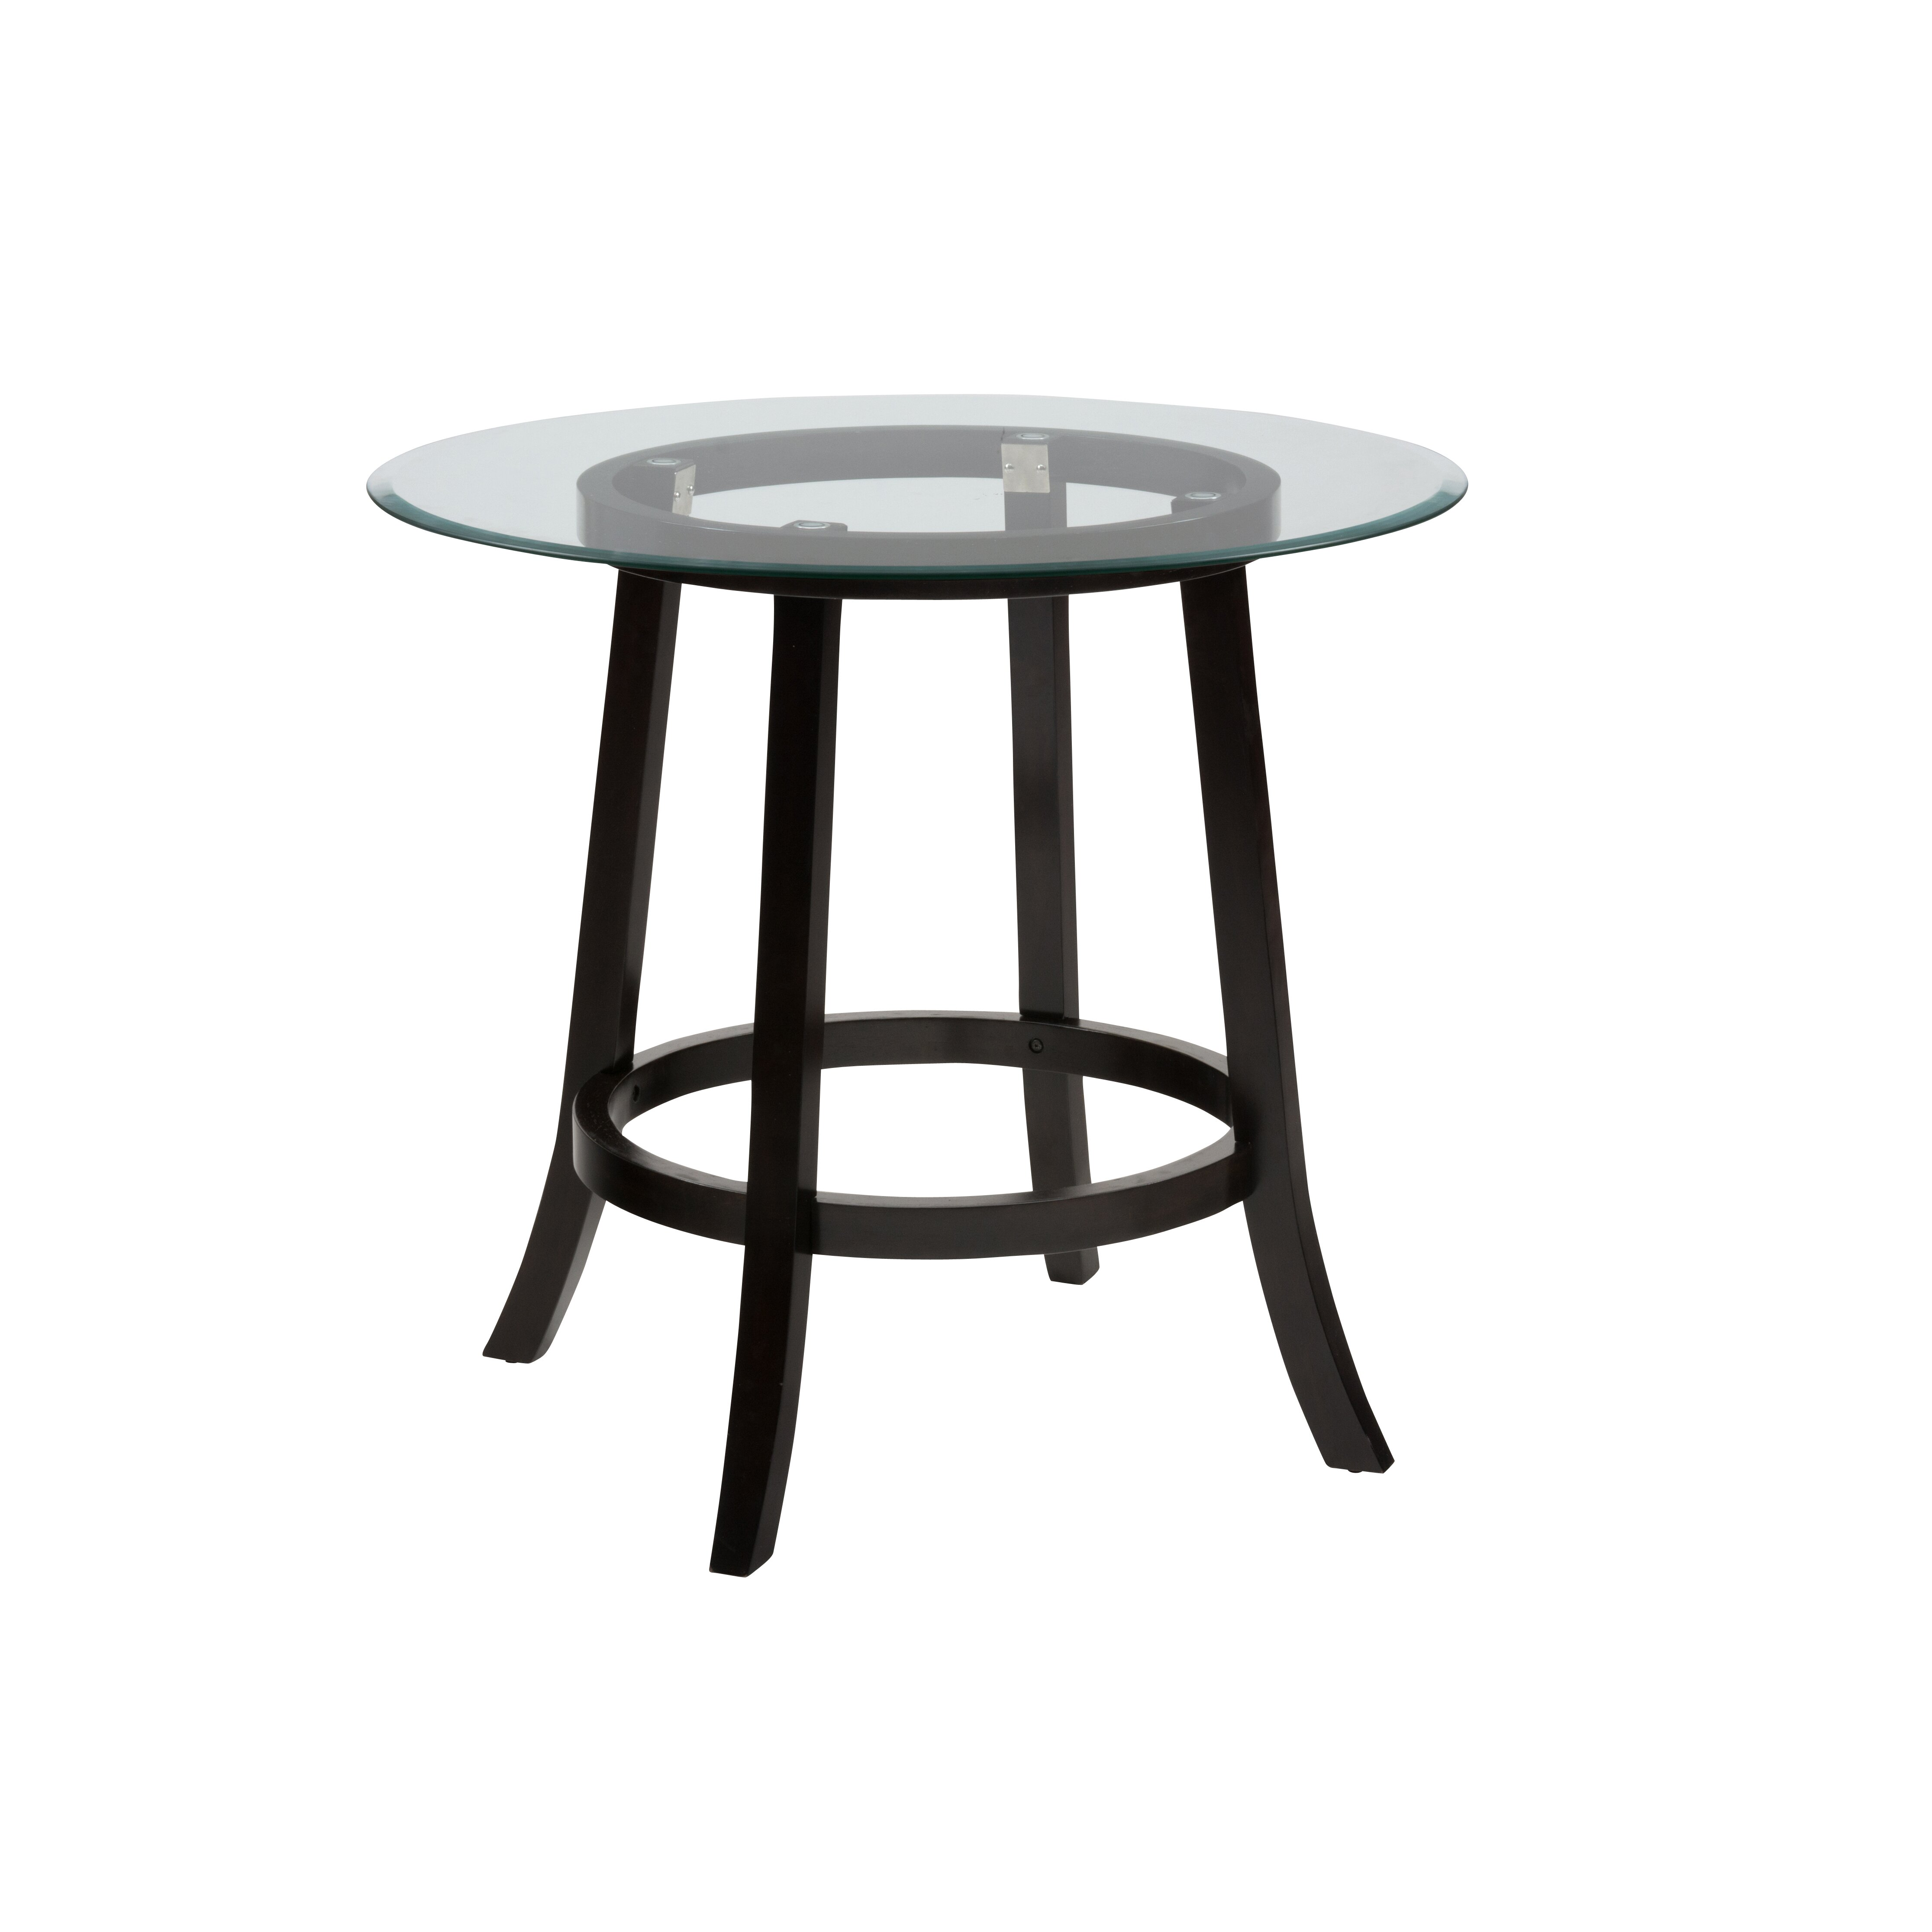 Bar Stool Height For 42 Inch Bar Images 100 42 Best Bar  : Aaron Pub 42 Round Counter Height Table with Glass Top 815 42BG42RDKT from flowersaustralia.co size 4463 x 4463 jpeg 387kB